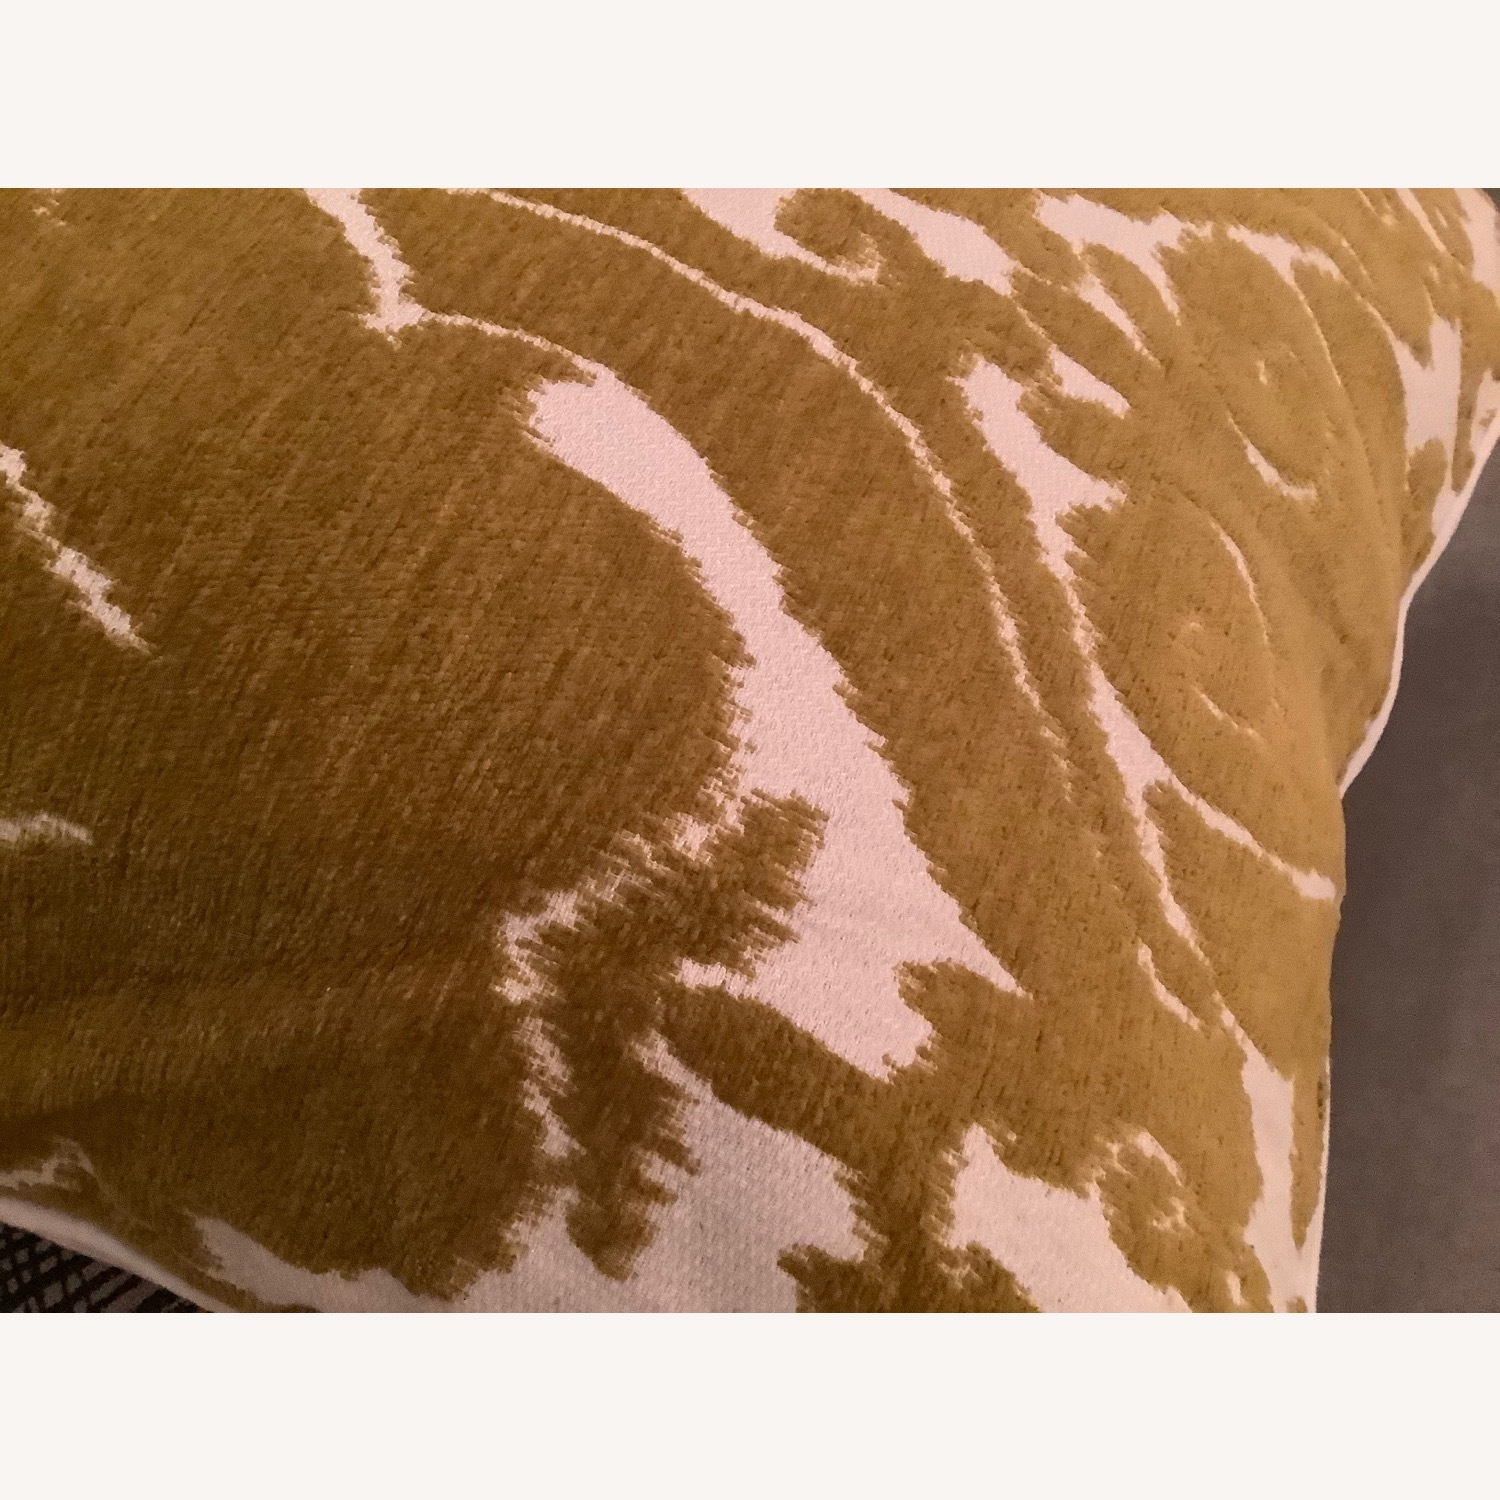 Jacquard Woven Chenille Throw Pillow - image-5